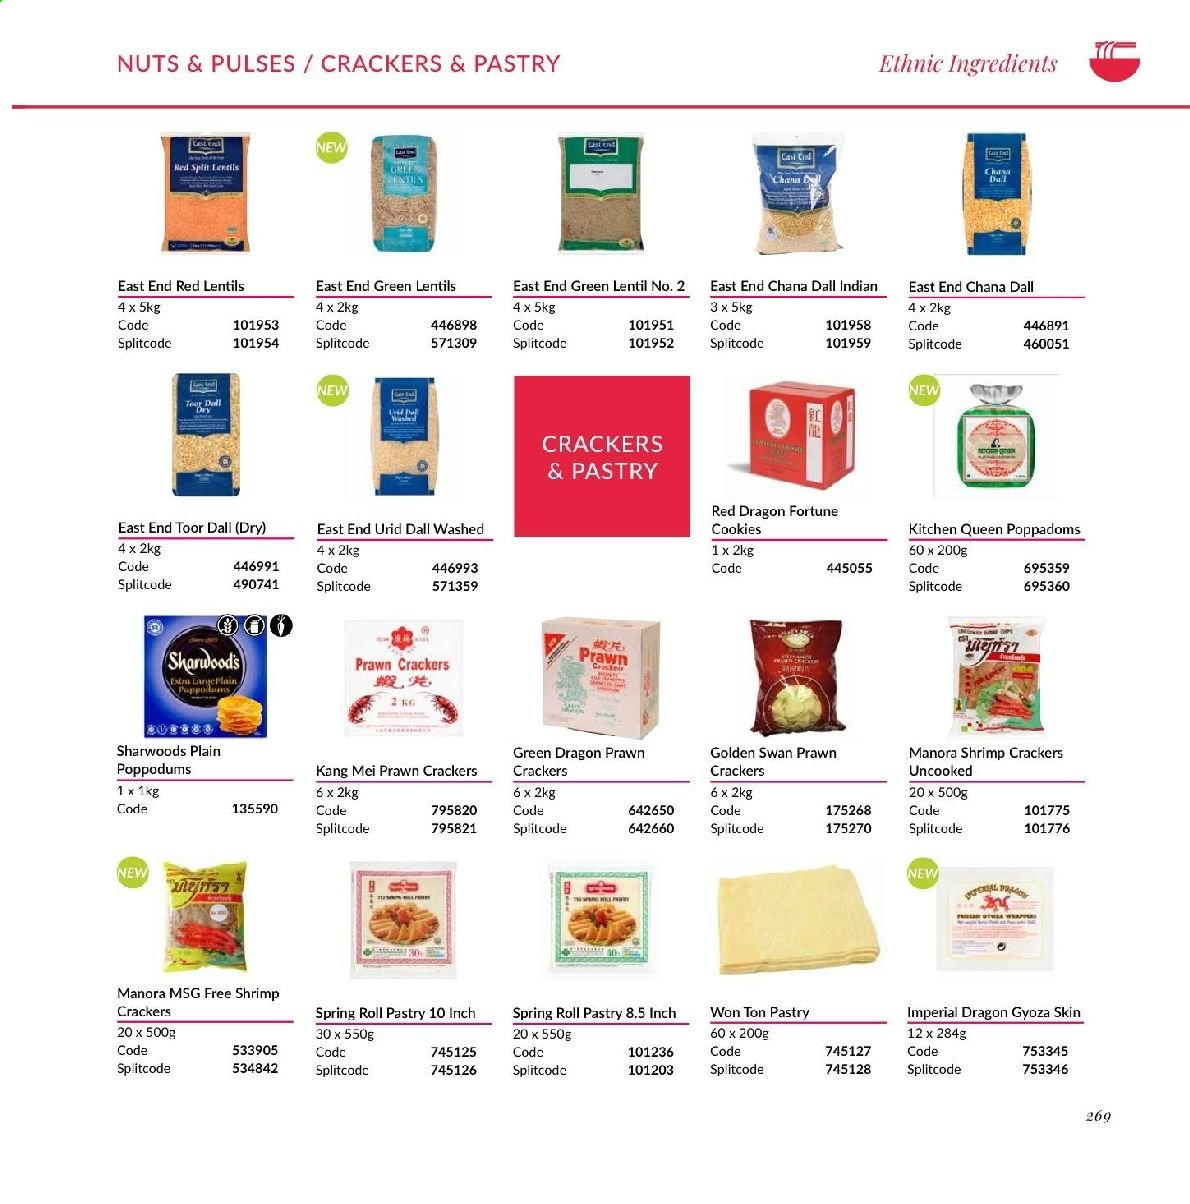 MUSGRAVE Market Place offer  - Sales products - prawn, shrimps, cookies, crackers, lentils, toor dal, red lentils, nuts. Page 259.